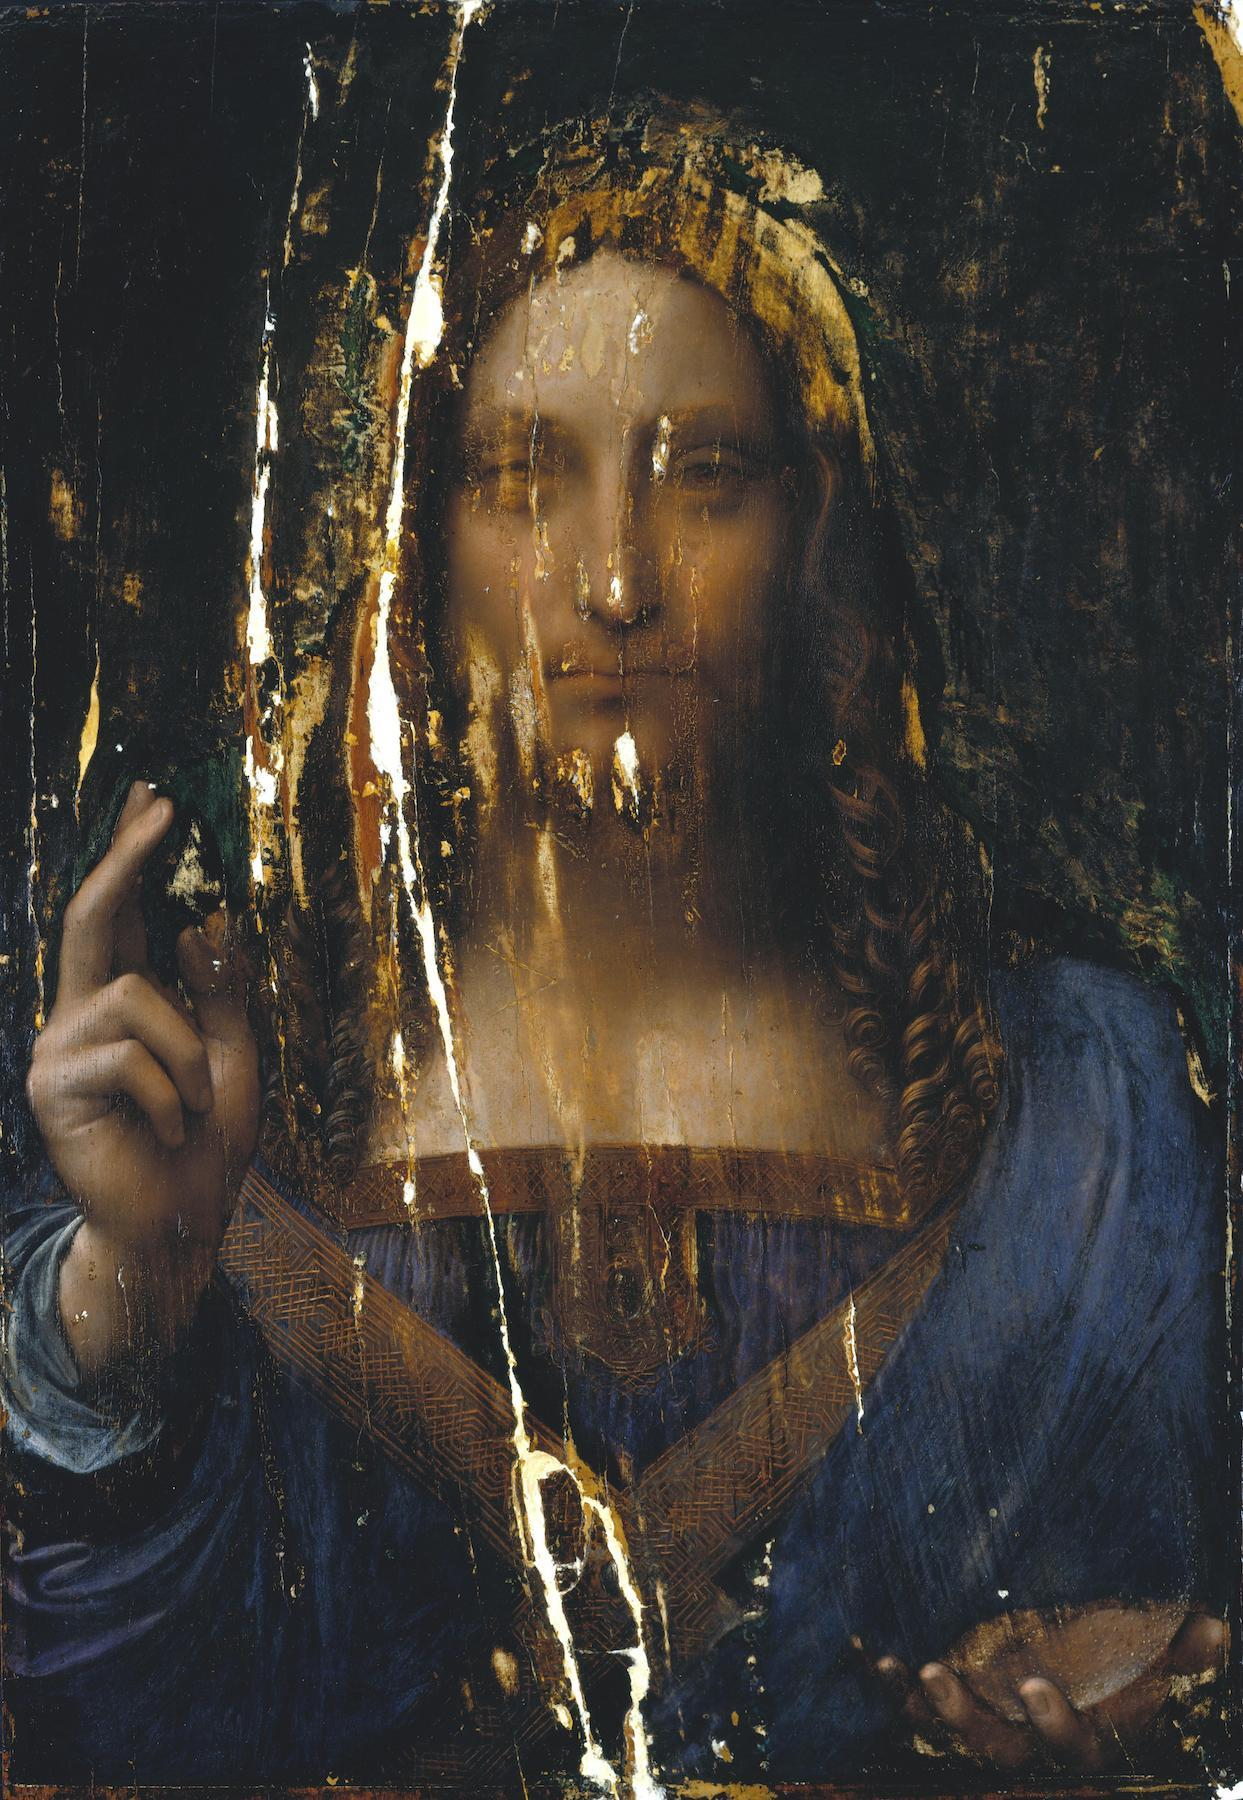 Leonardo da Vinci Salvator Mundi  (ca. 1500) after cleaning